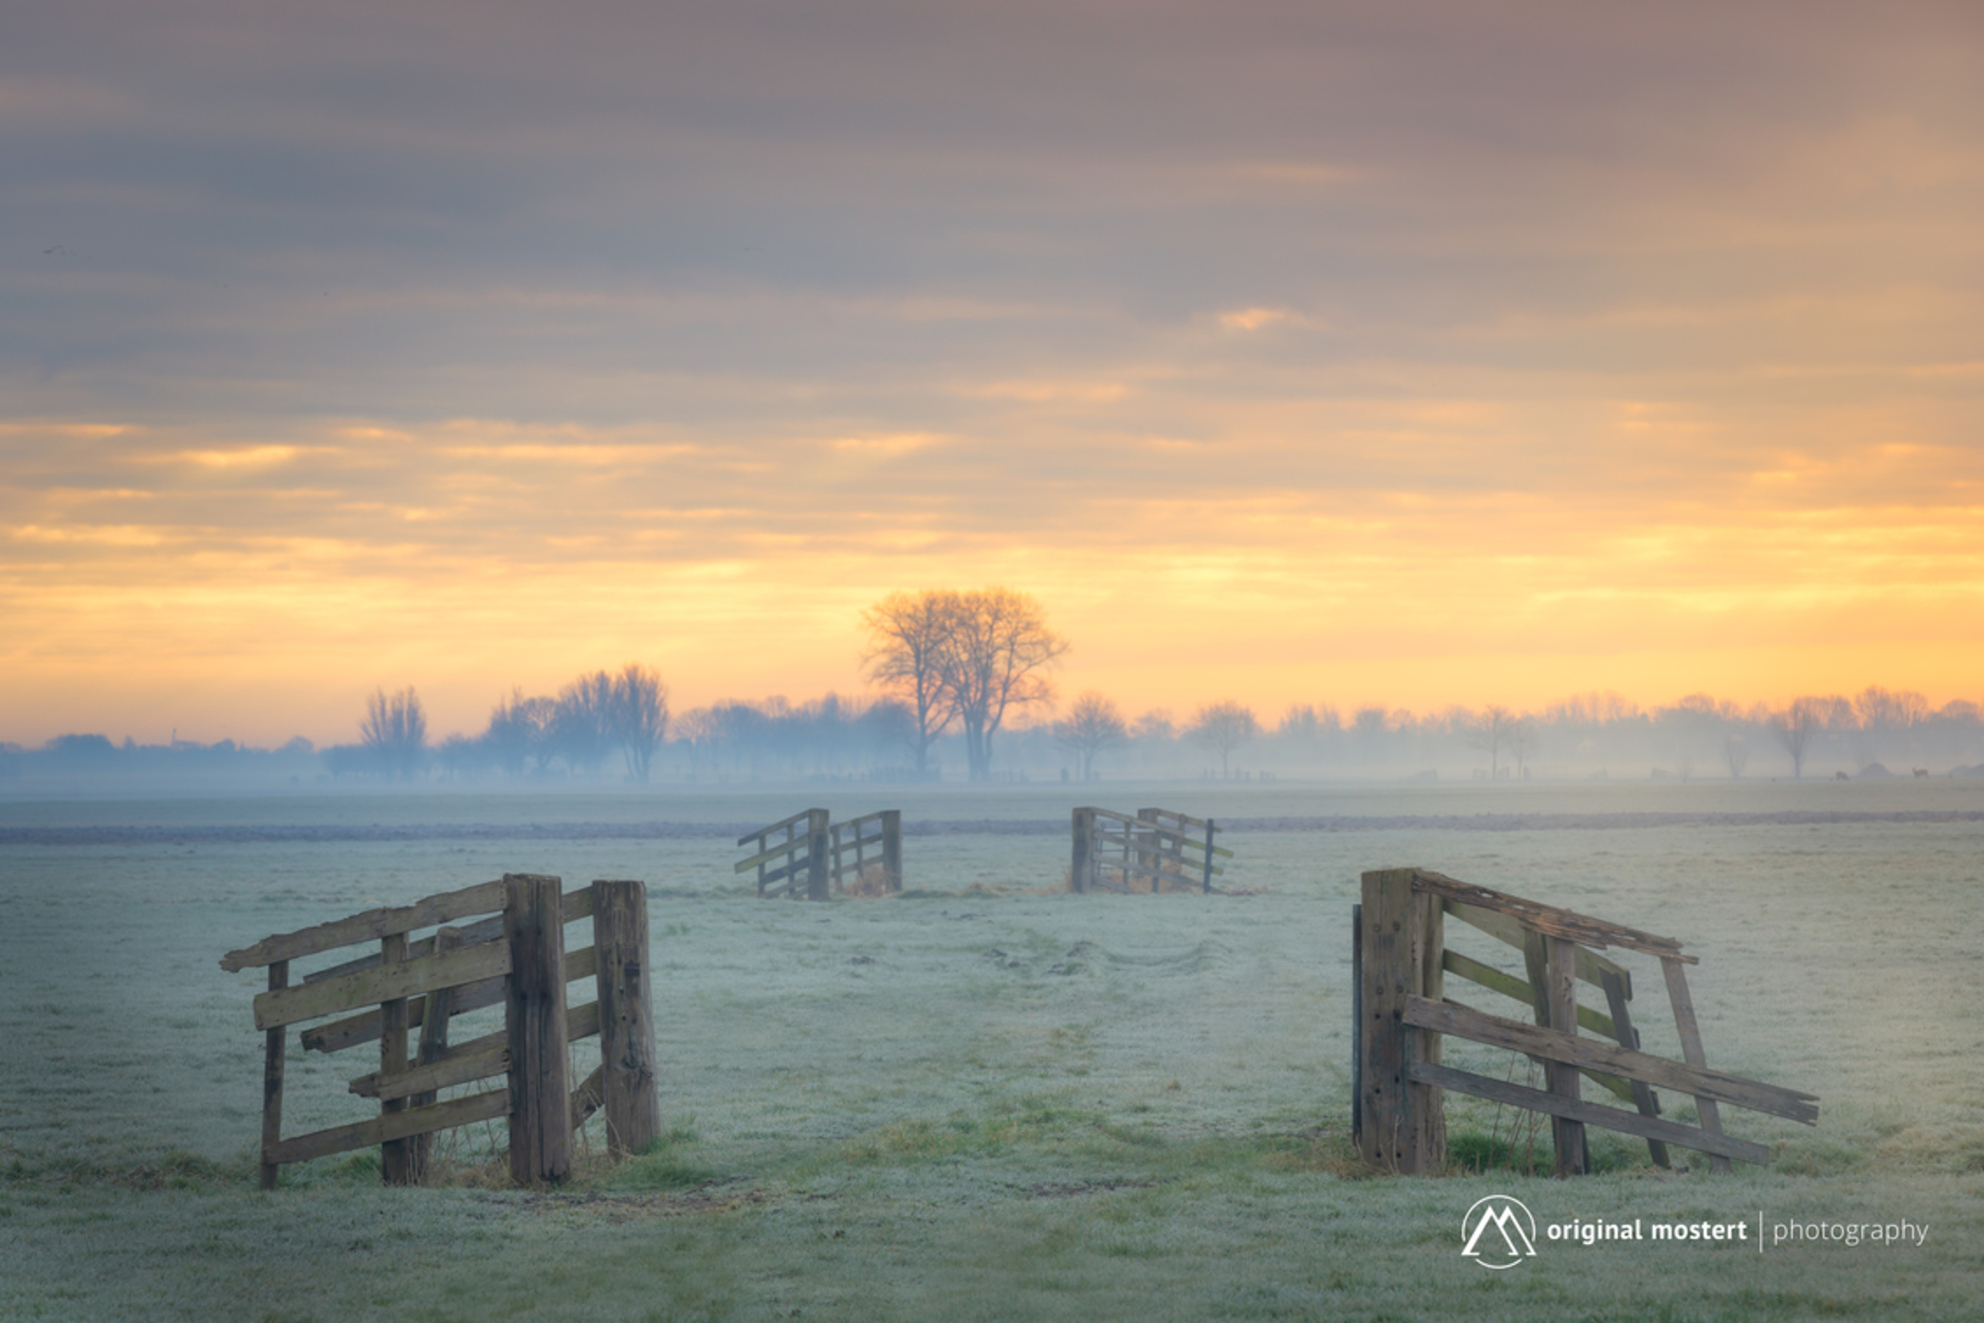 Crisp morning light... - Crisp morning light... - foto door Original Mostert op 08-03-2021 - deze foto bevat: lucht, wolken, lente, licht, landschap, mist, zonsopkomst, canon, polder, zoomnl, Zoom.nl, lange sluitertijd, nisifilters - Deze foto mag gebruikt worden in een Zoom.nl publicatie